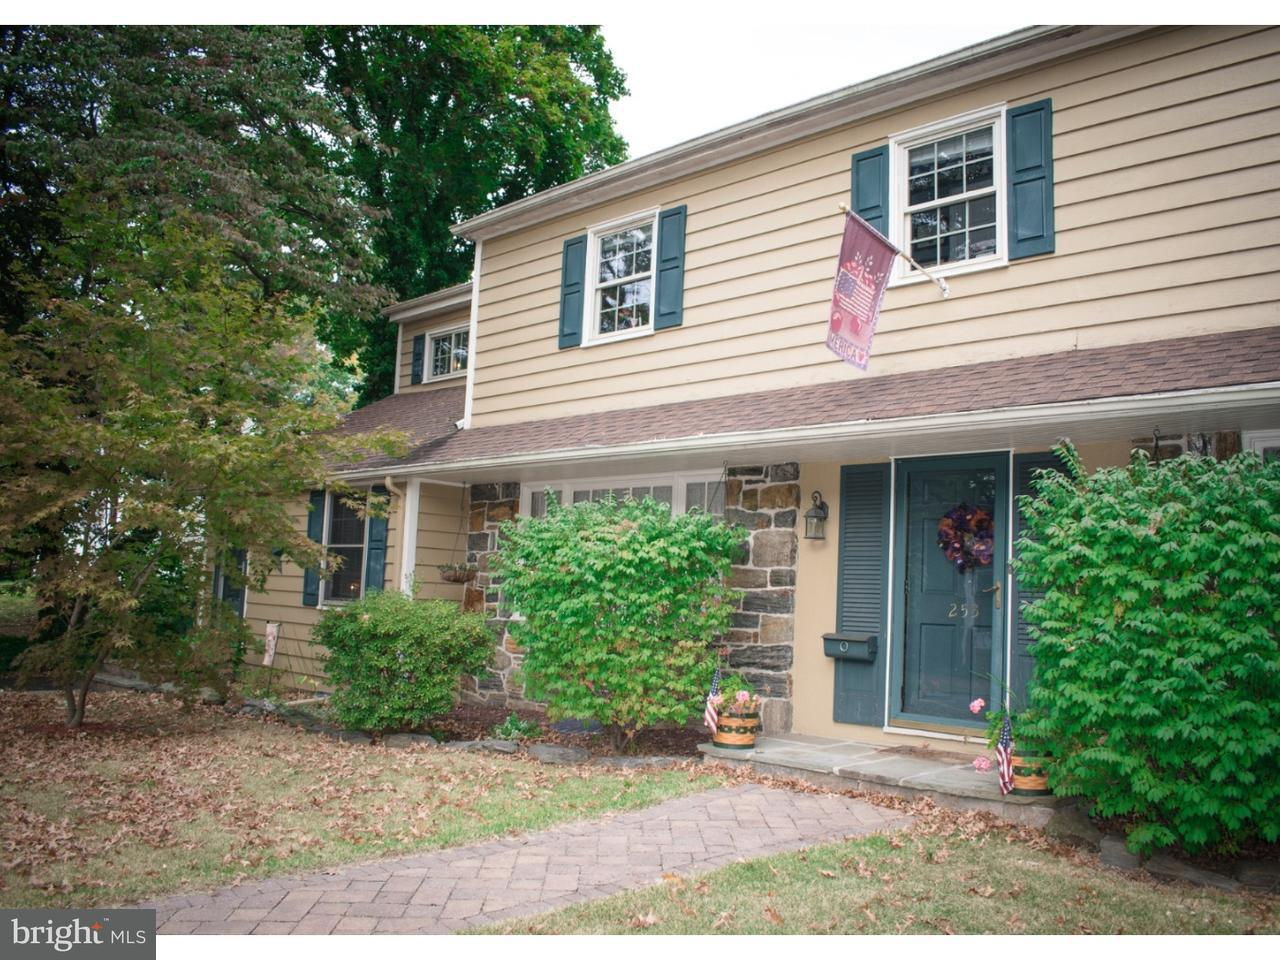 Single Family Home for Sale at 253 HIGH Street Mount Holly, New Jersey 08060 United States